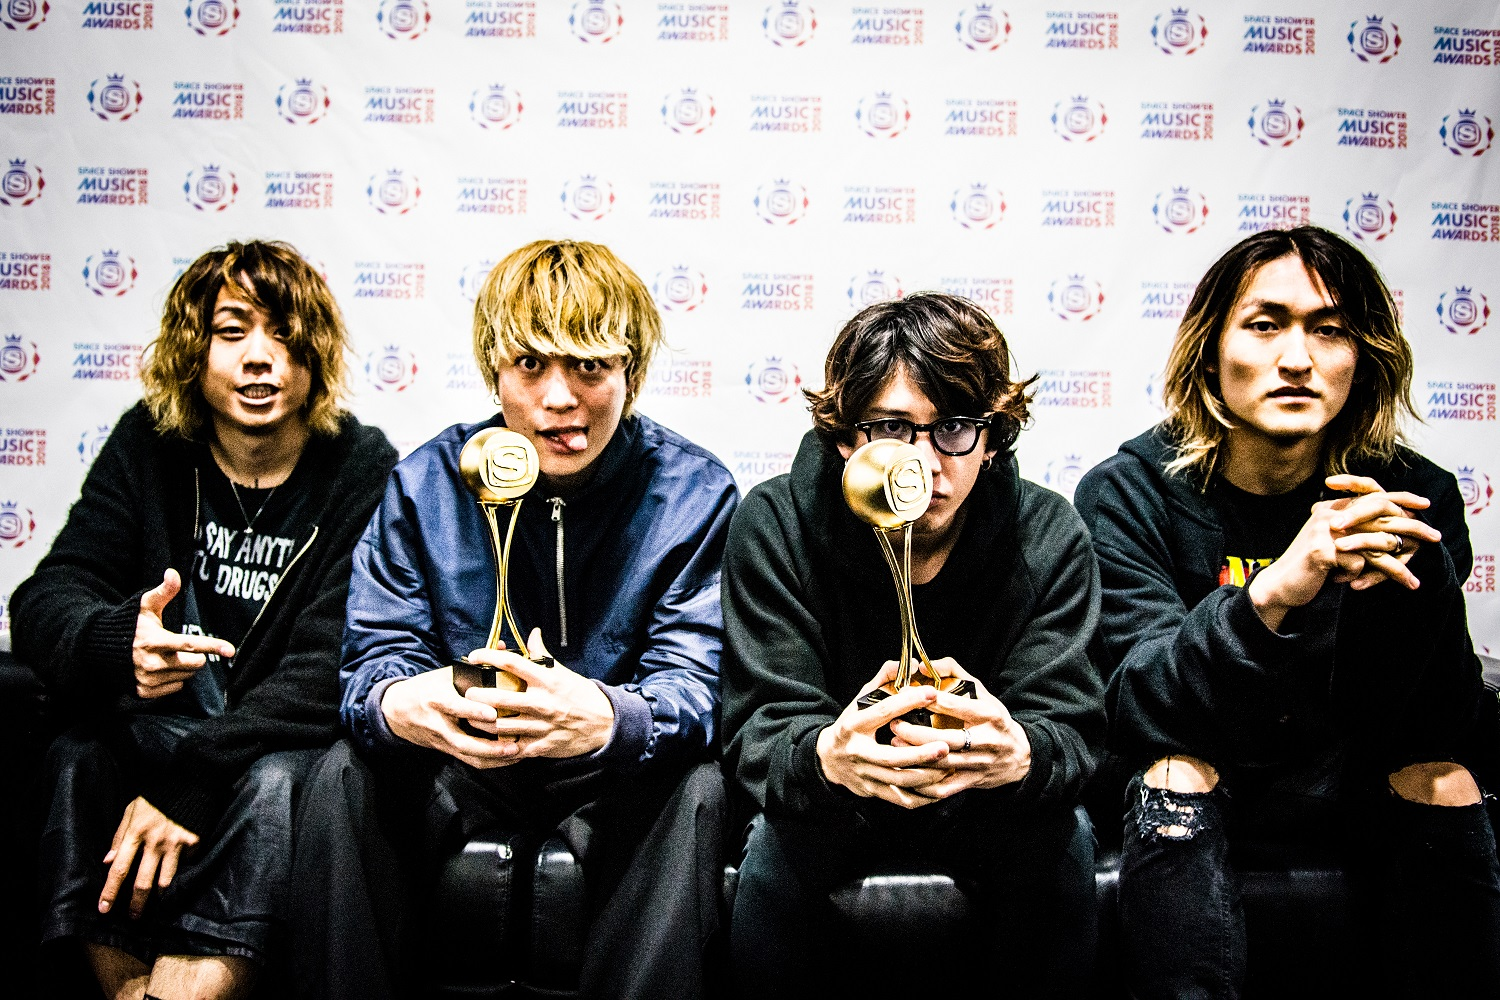 ONE OK ROCK - SPACE SHOWER MUSIC AWARDS 2018